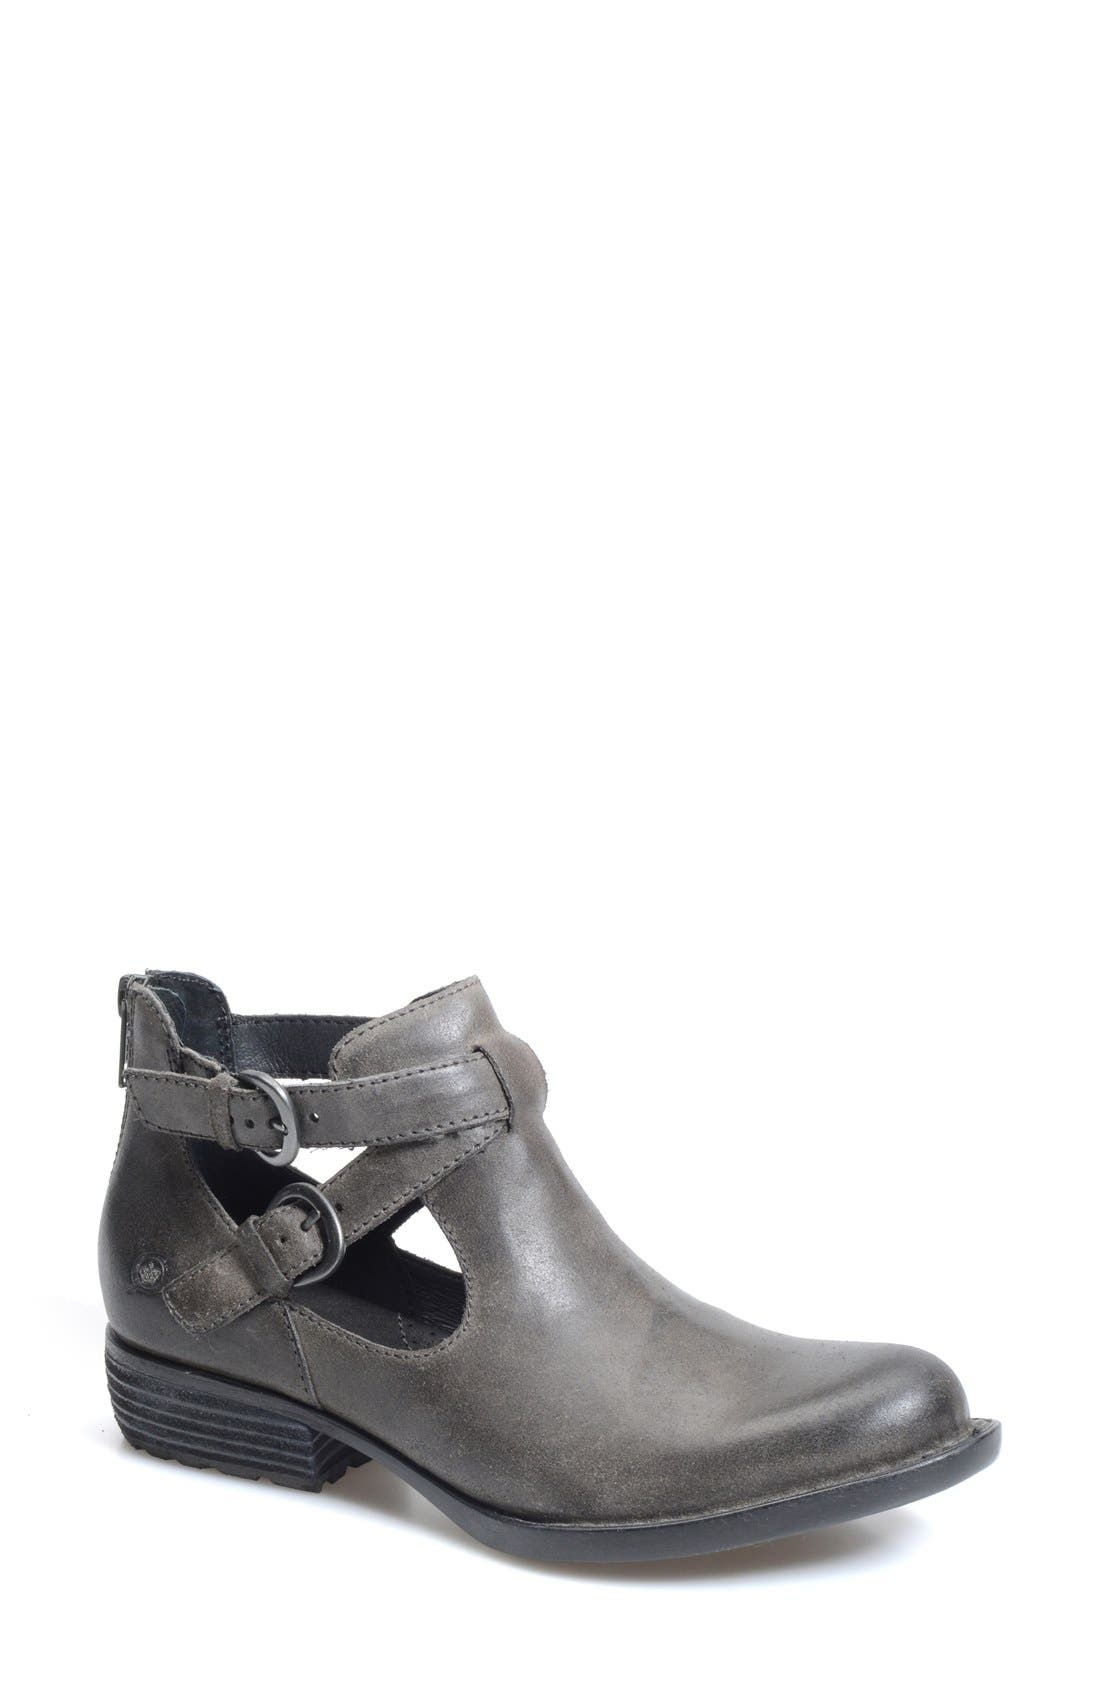 Alternate Image 1 Selected - Børn 'Kamilla' Cutout Ankle Boot (Women)